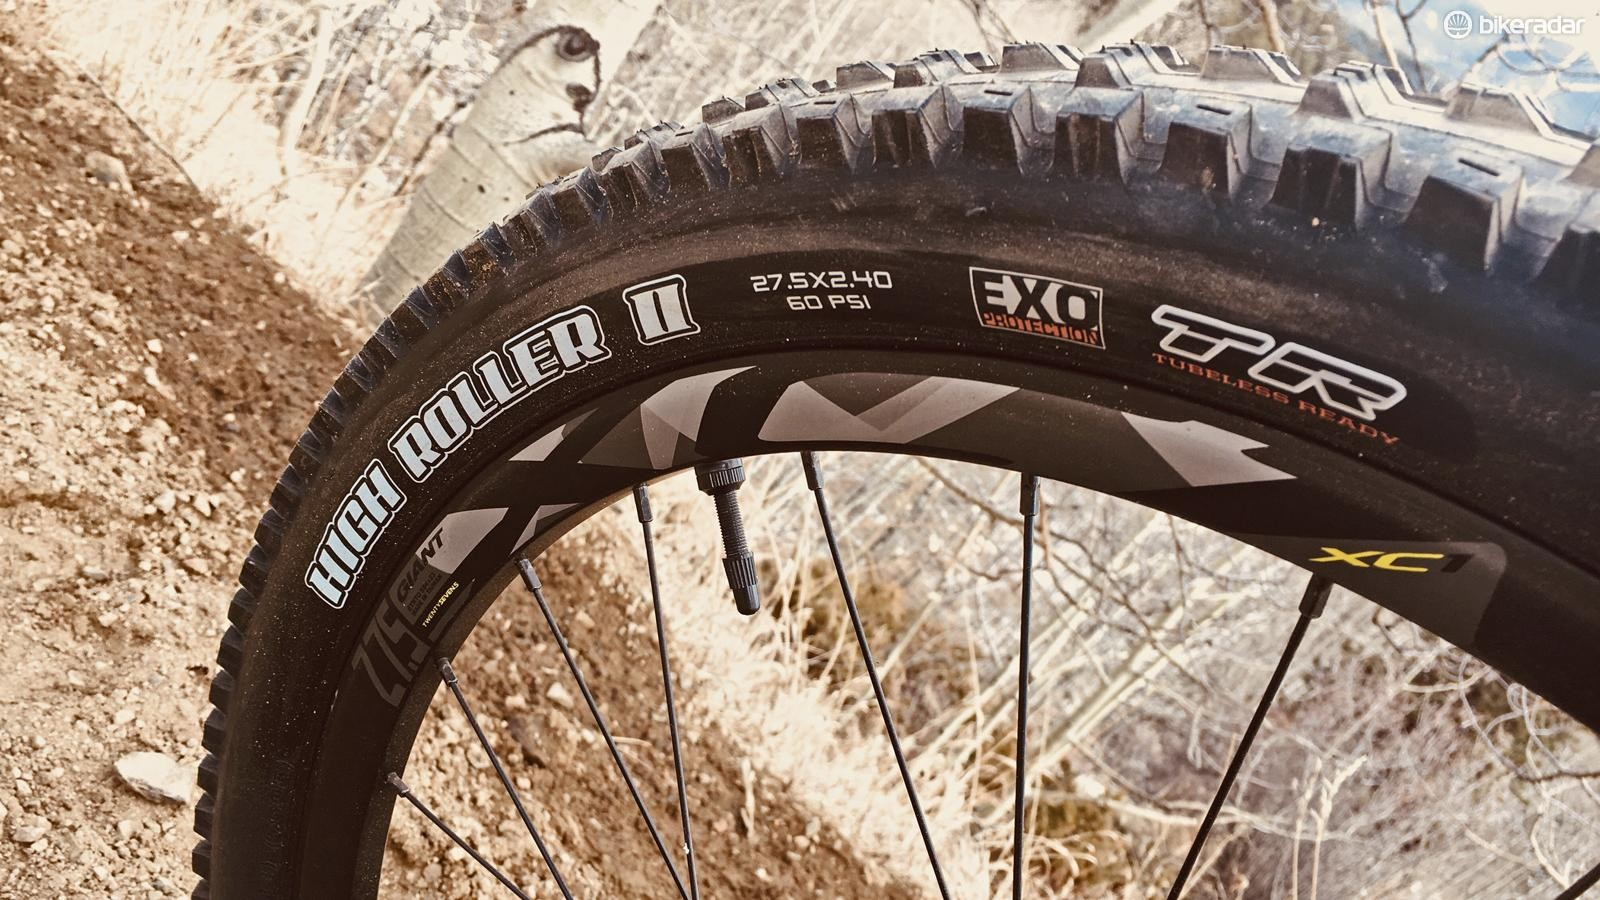 The 2.4in Maxxis High Roller II tires front and rear are a rowdy trail spec